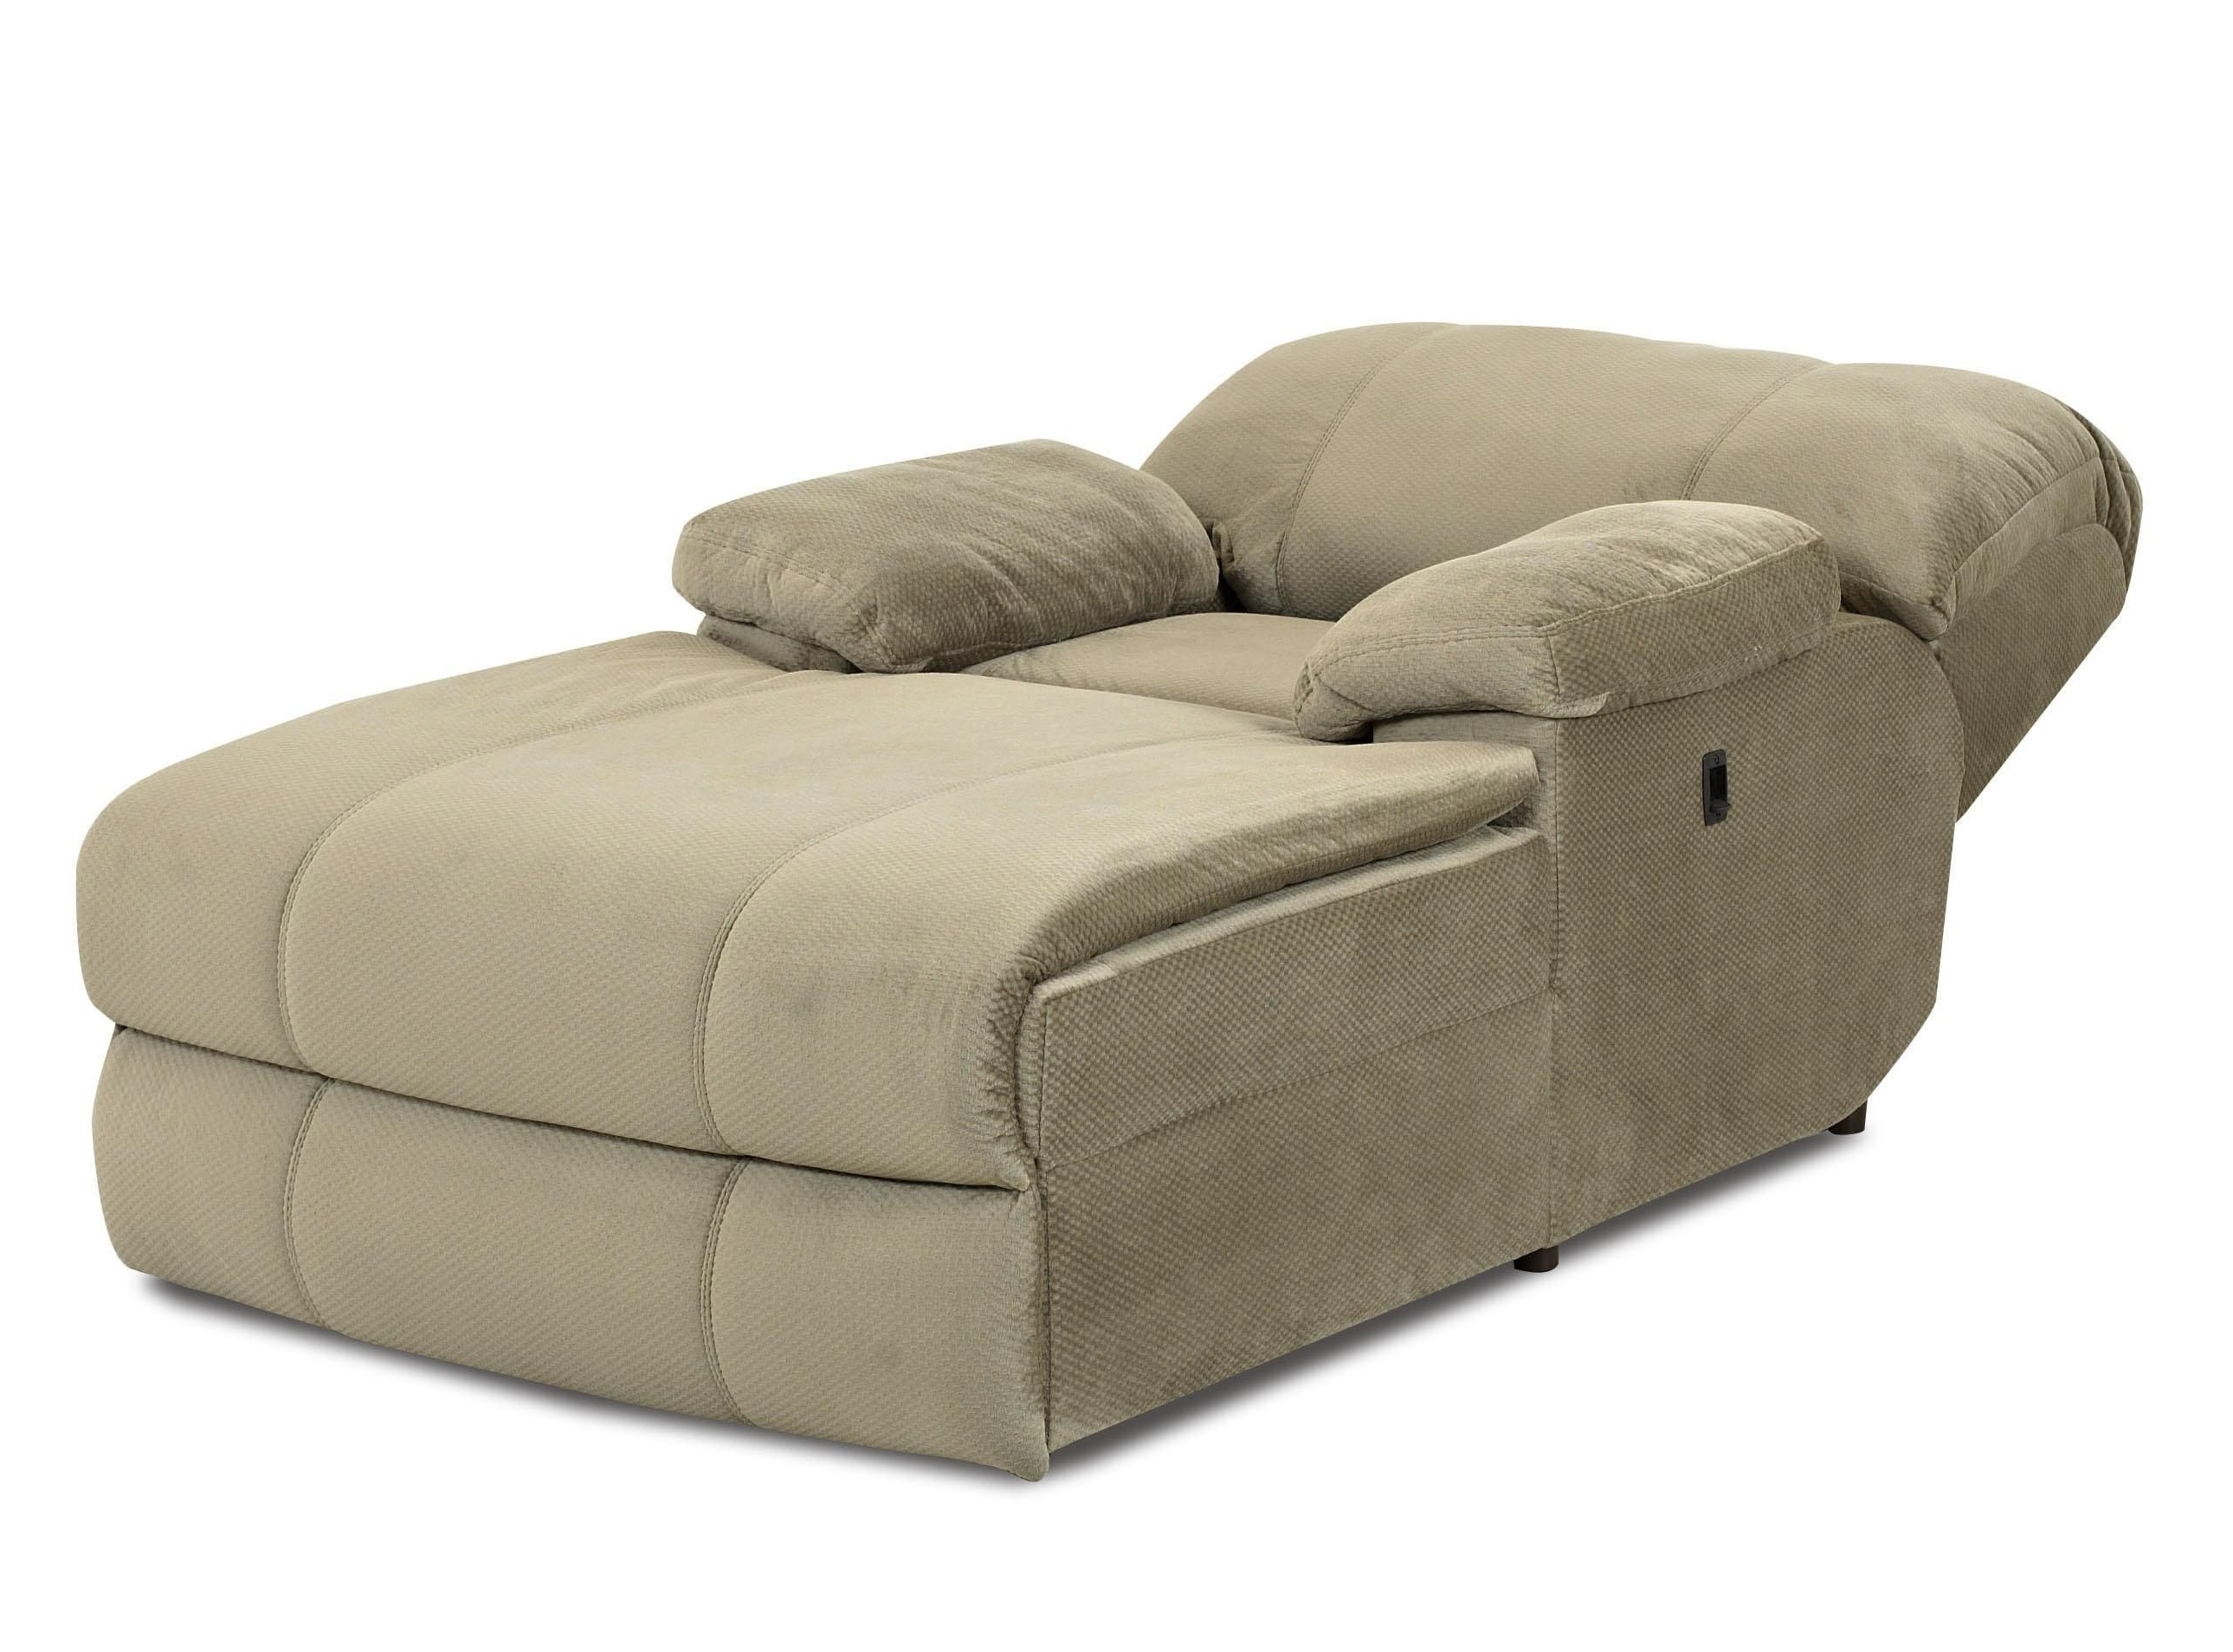 Trendy Indoor Oversized Chaise Lounge (View 13 of 15)